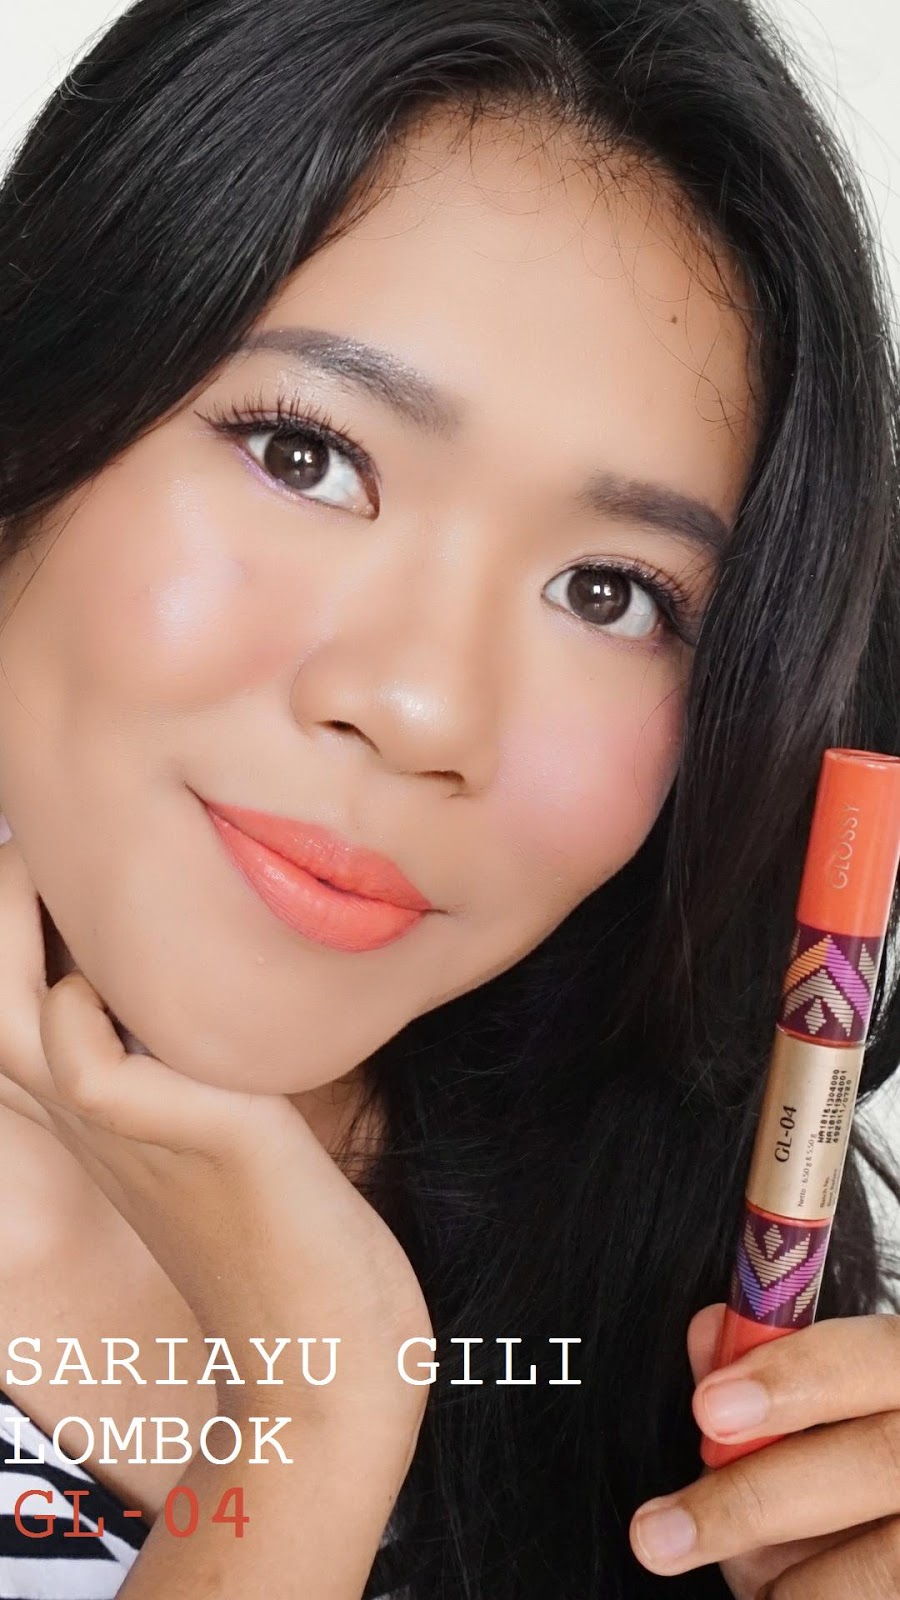 Sariayu Gili Lombok Duo Lip Color Review Dessy Dyl Trend 16 K 10 Gl 04